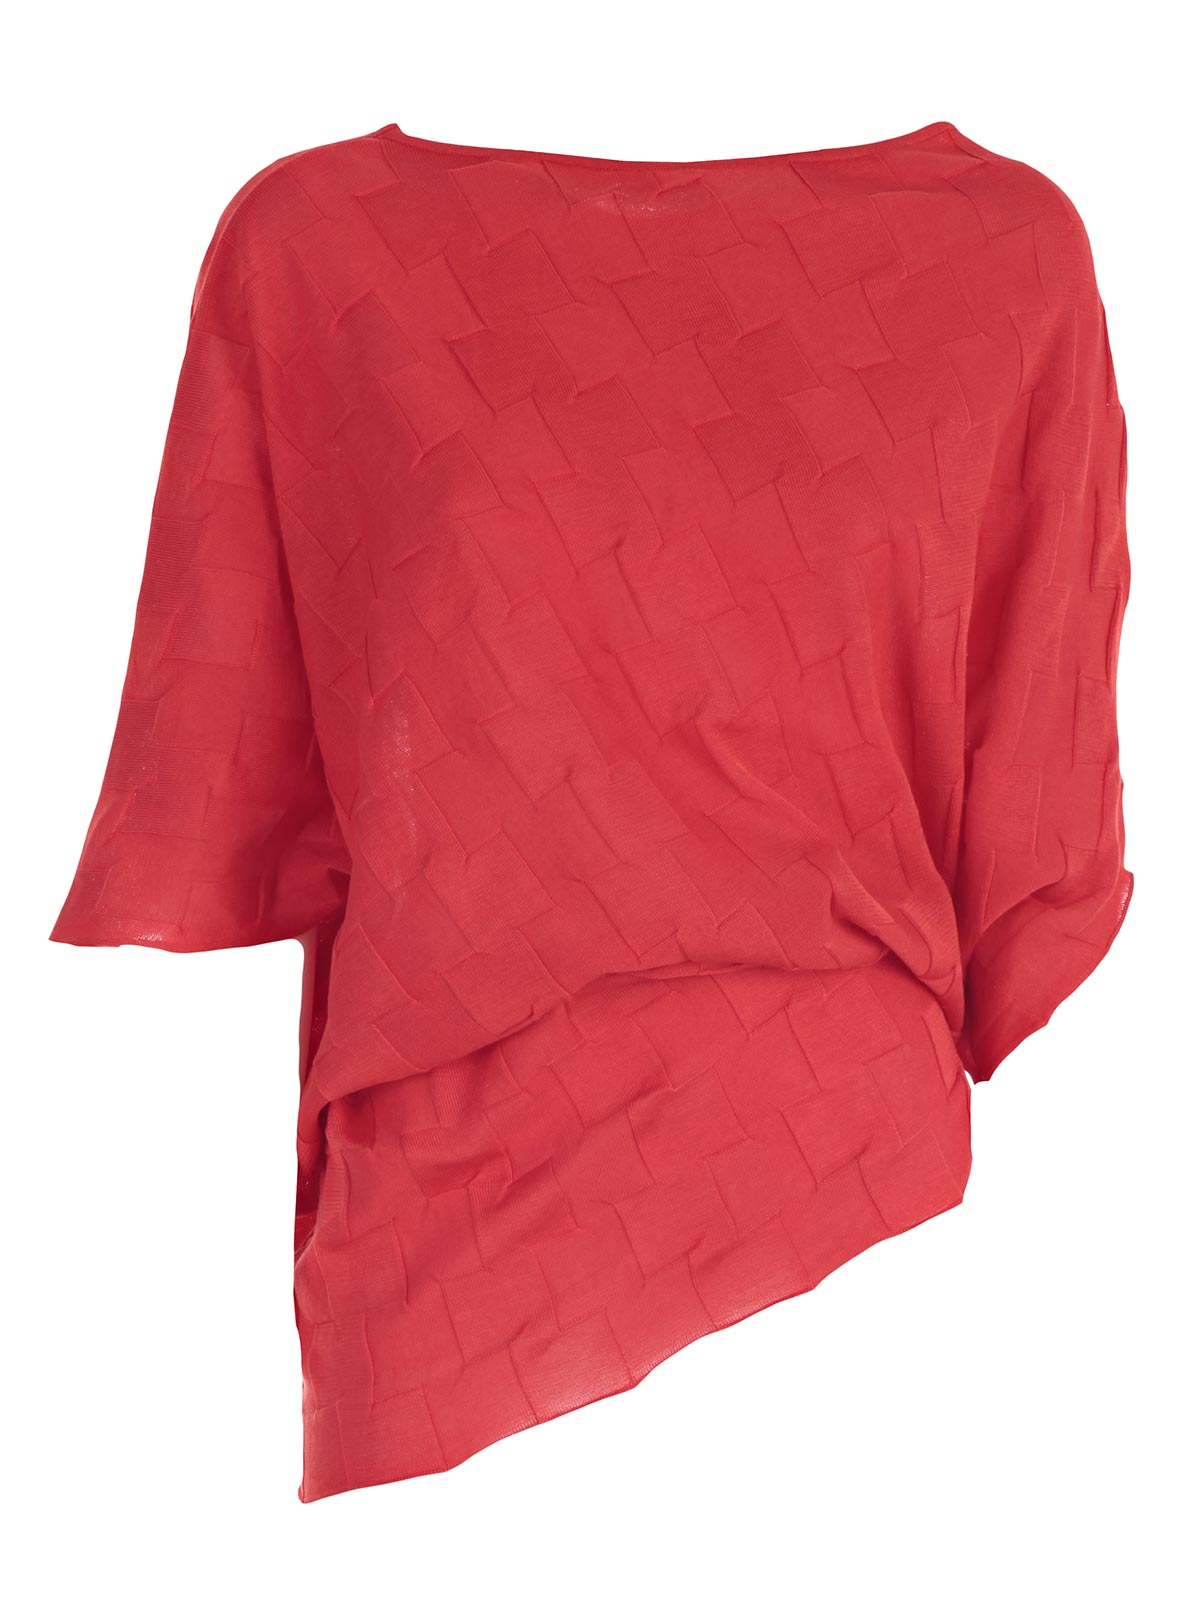 Picture of ISSEY MIYAKE  JERSEY MAGLIA ASIMMETRICA